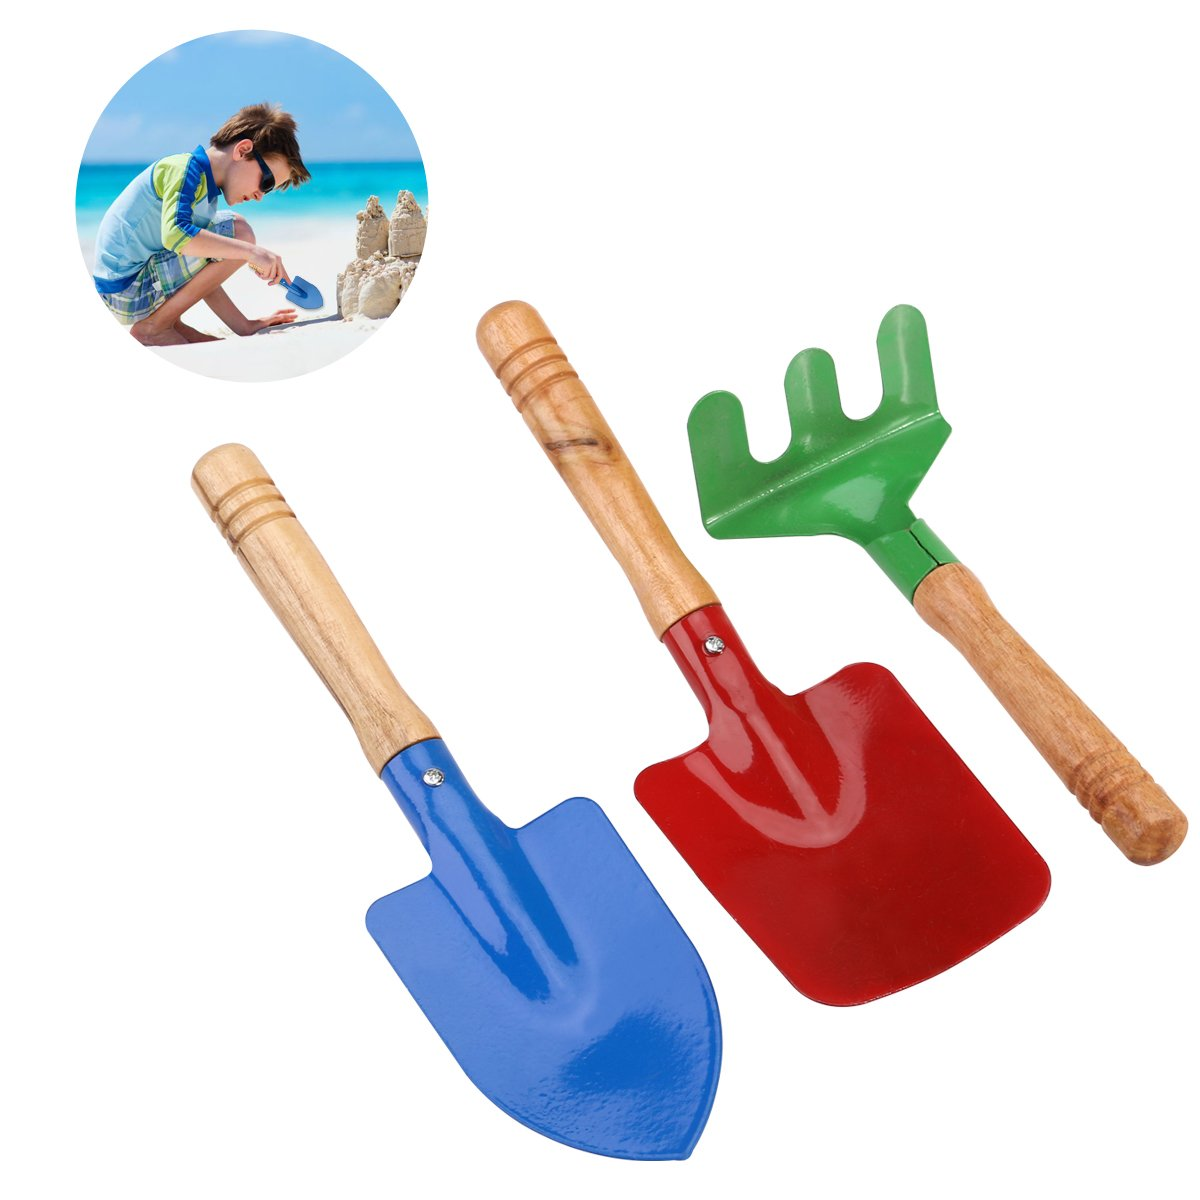 NUOLUX Outdoor Garden Tools Set Rake Shovel Kids Beach Sandbox Toy 3pcs